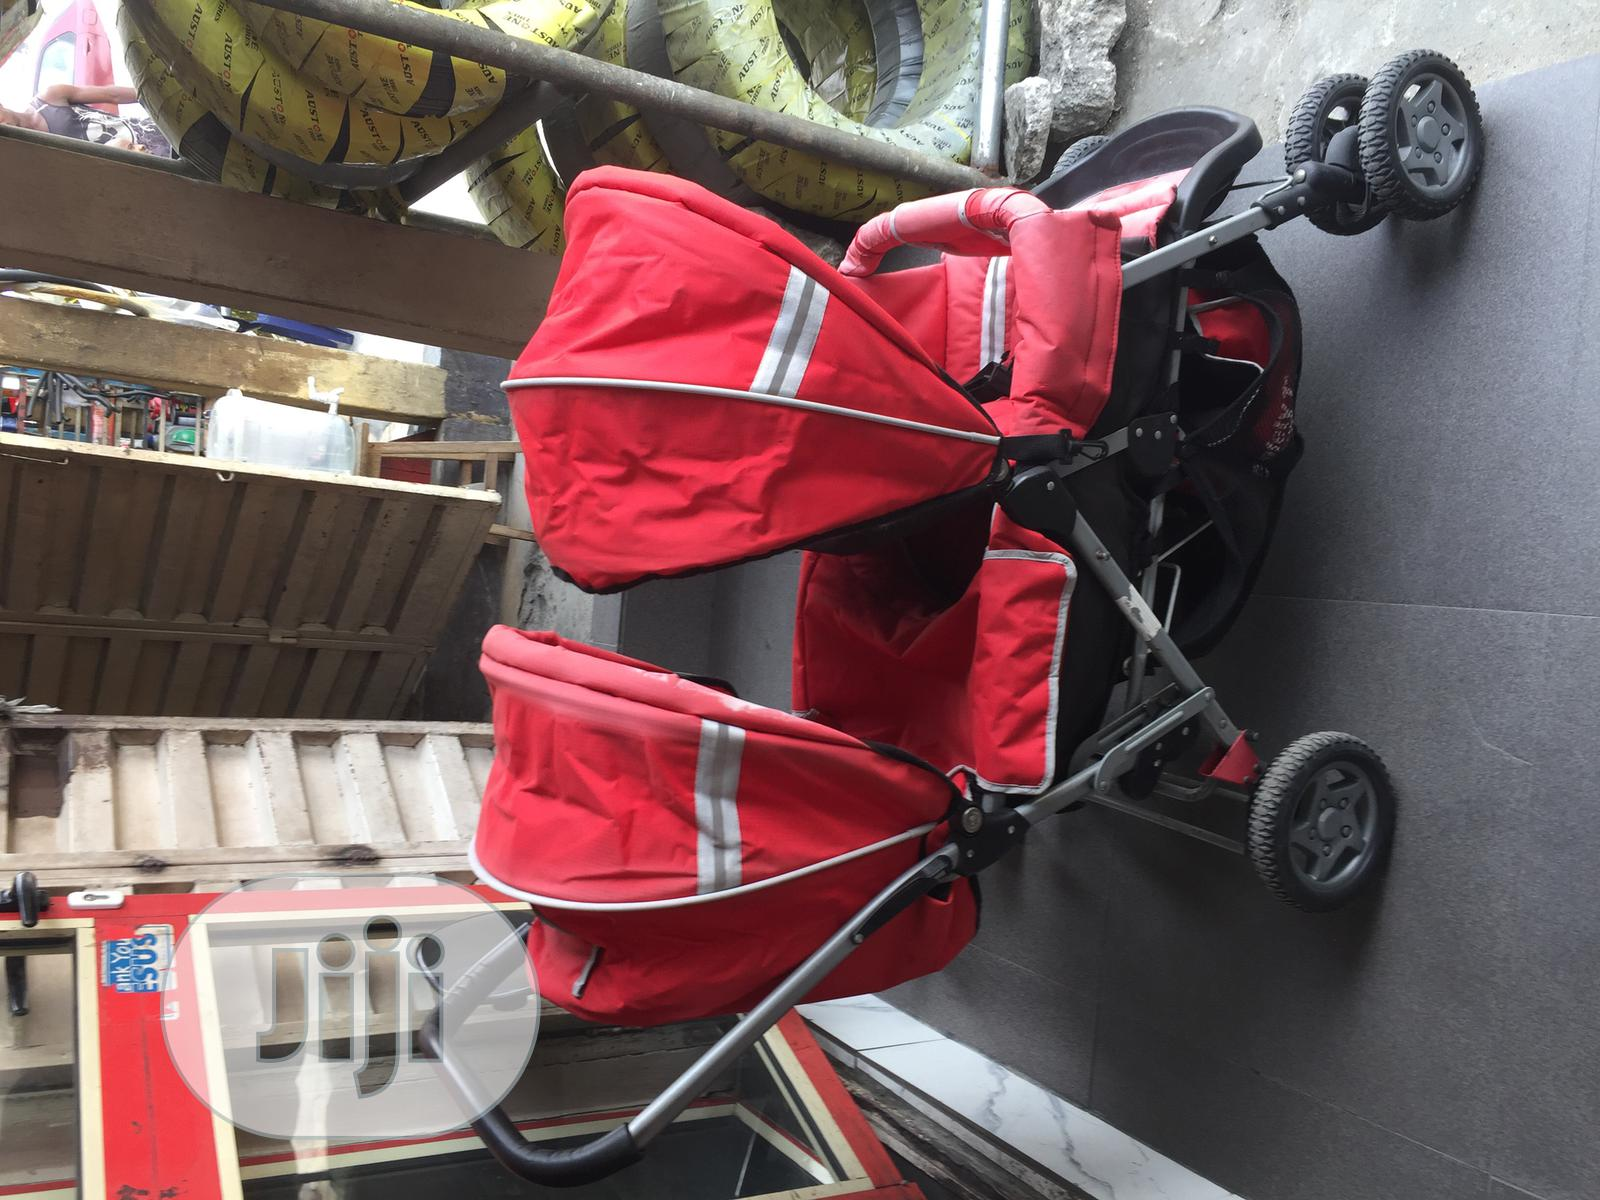 Archive: Used Stroller for Sale.